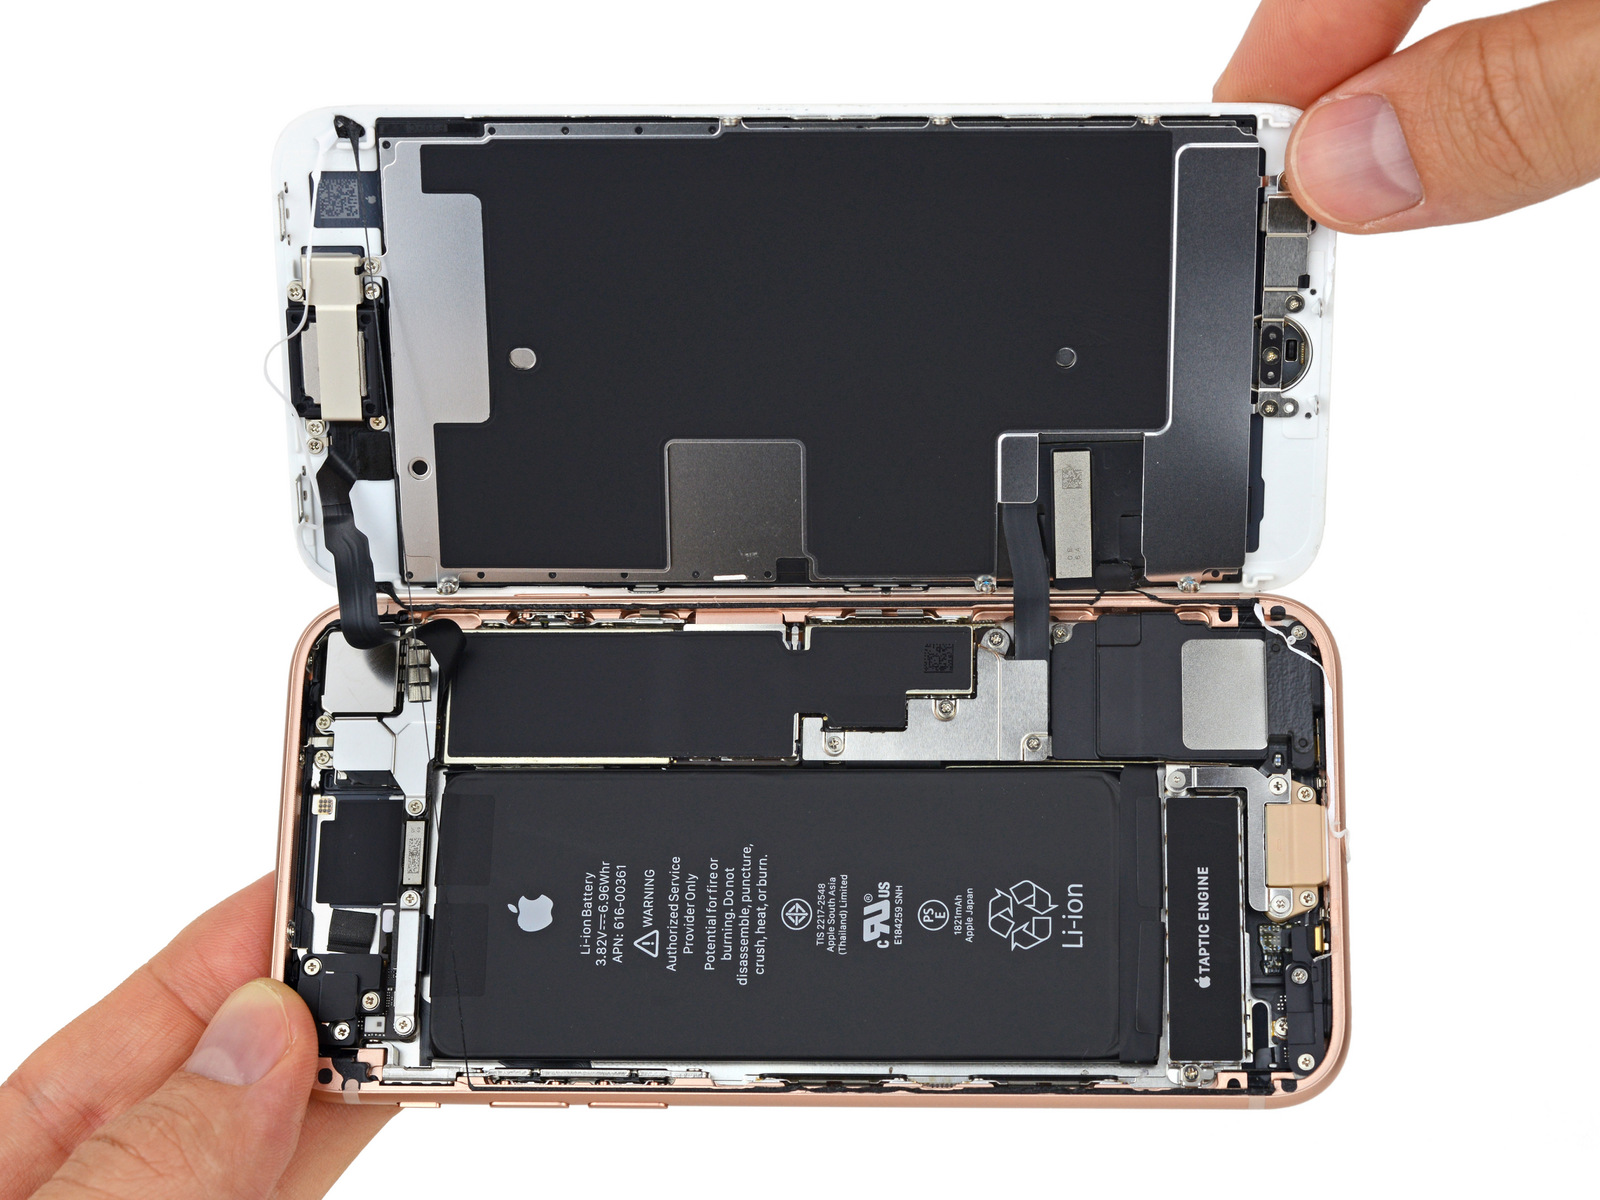 Ifixits Iphone 8 Teardown Finds A Smaller Battery And Lots Of Glue on repair list